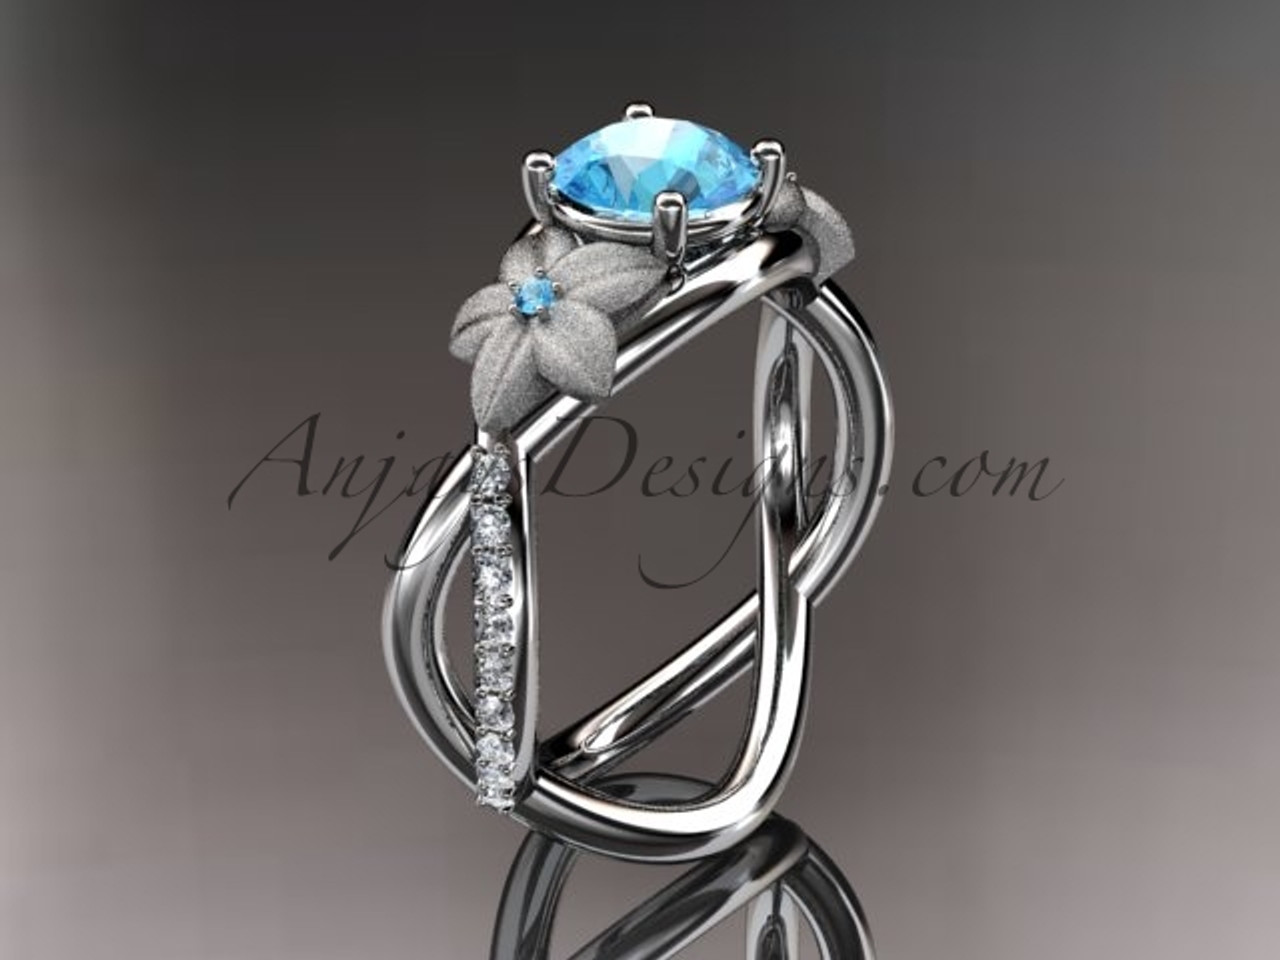 ring birthstone wedding rings dp december jewelry blue topaz white gold diamond com oval and amazon